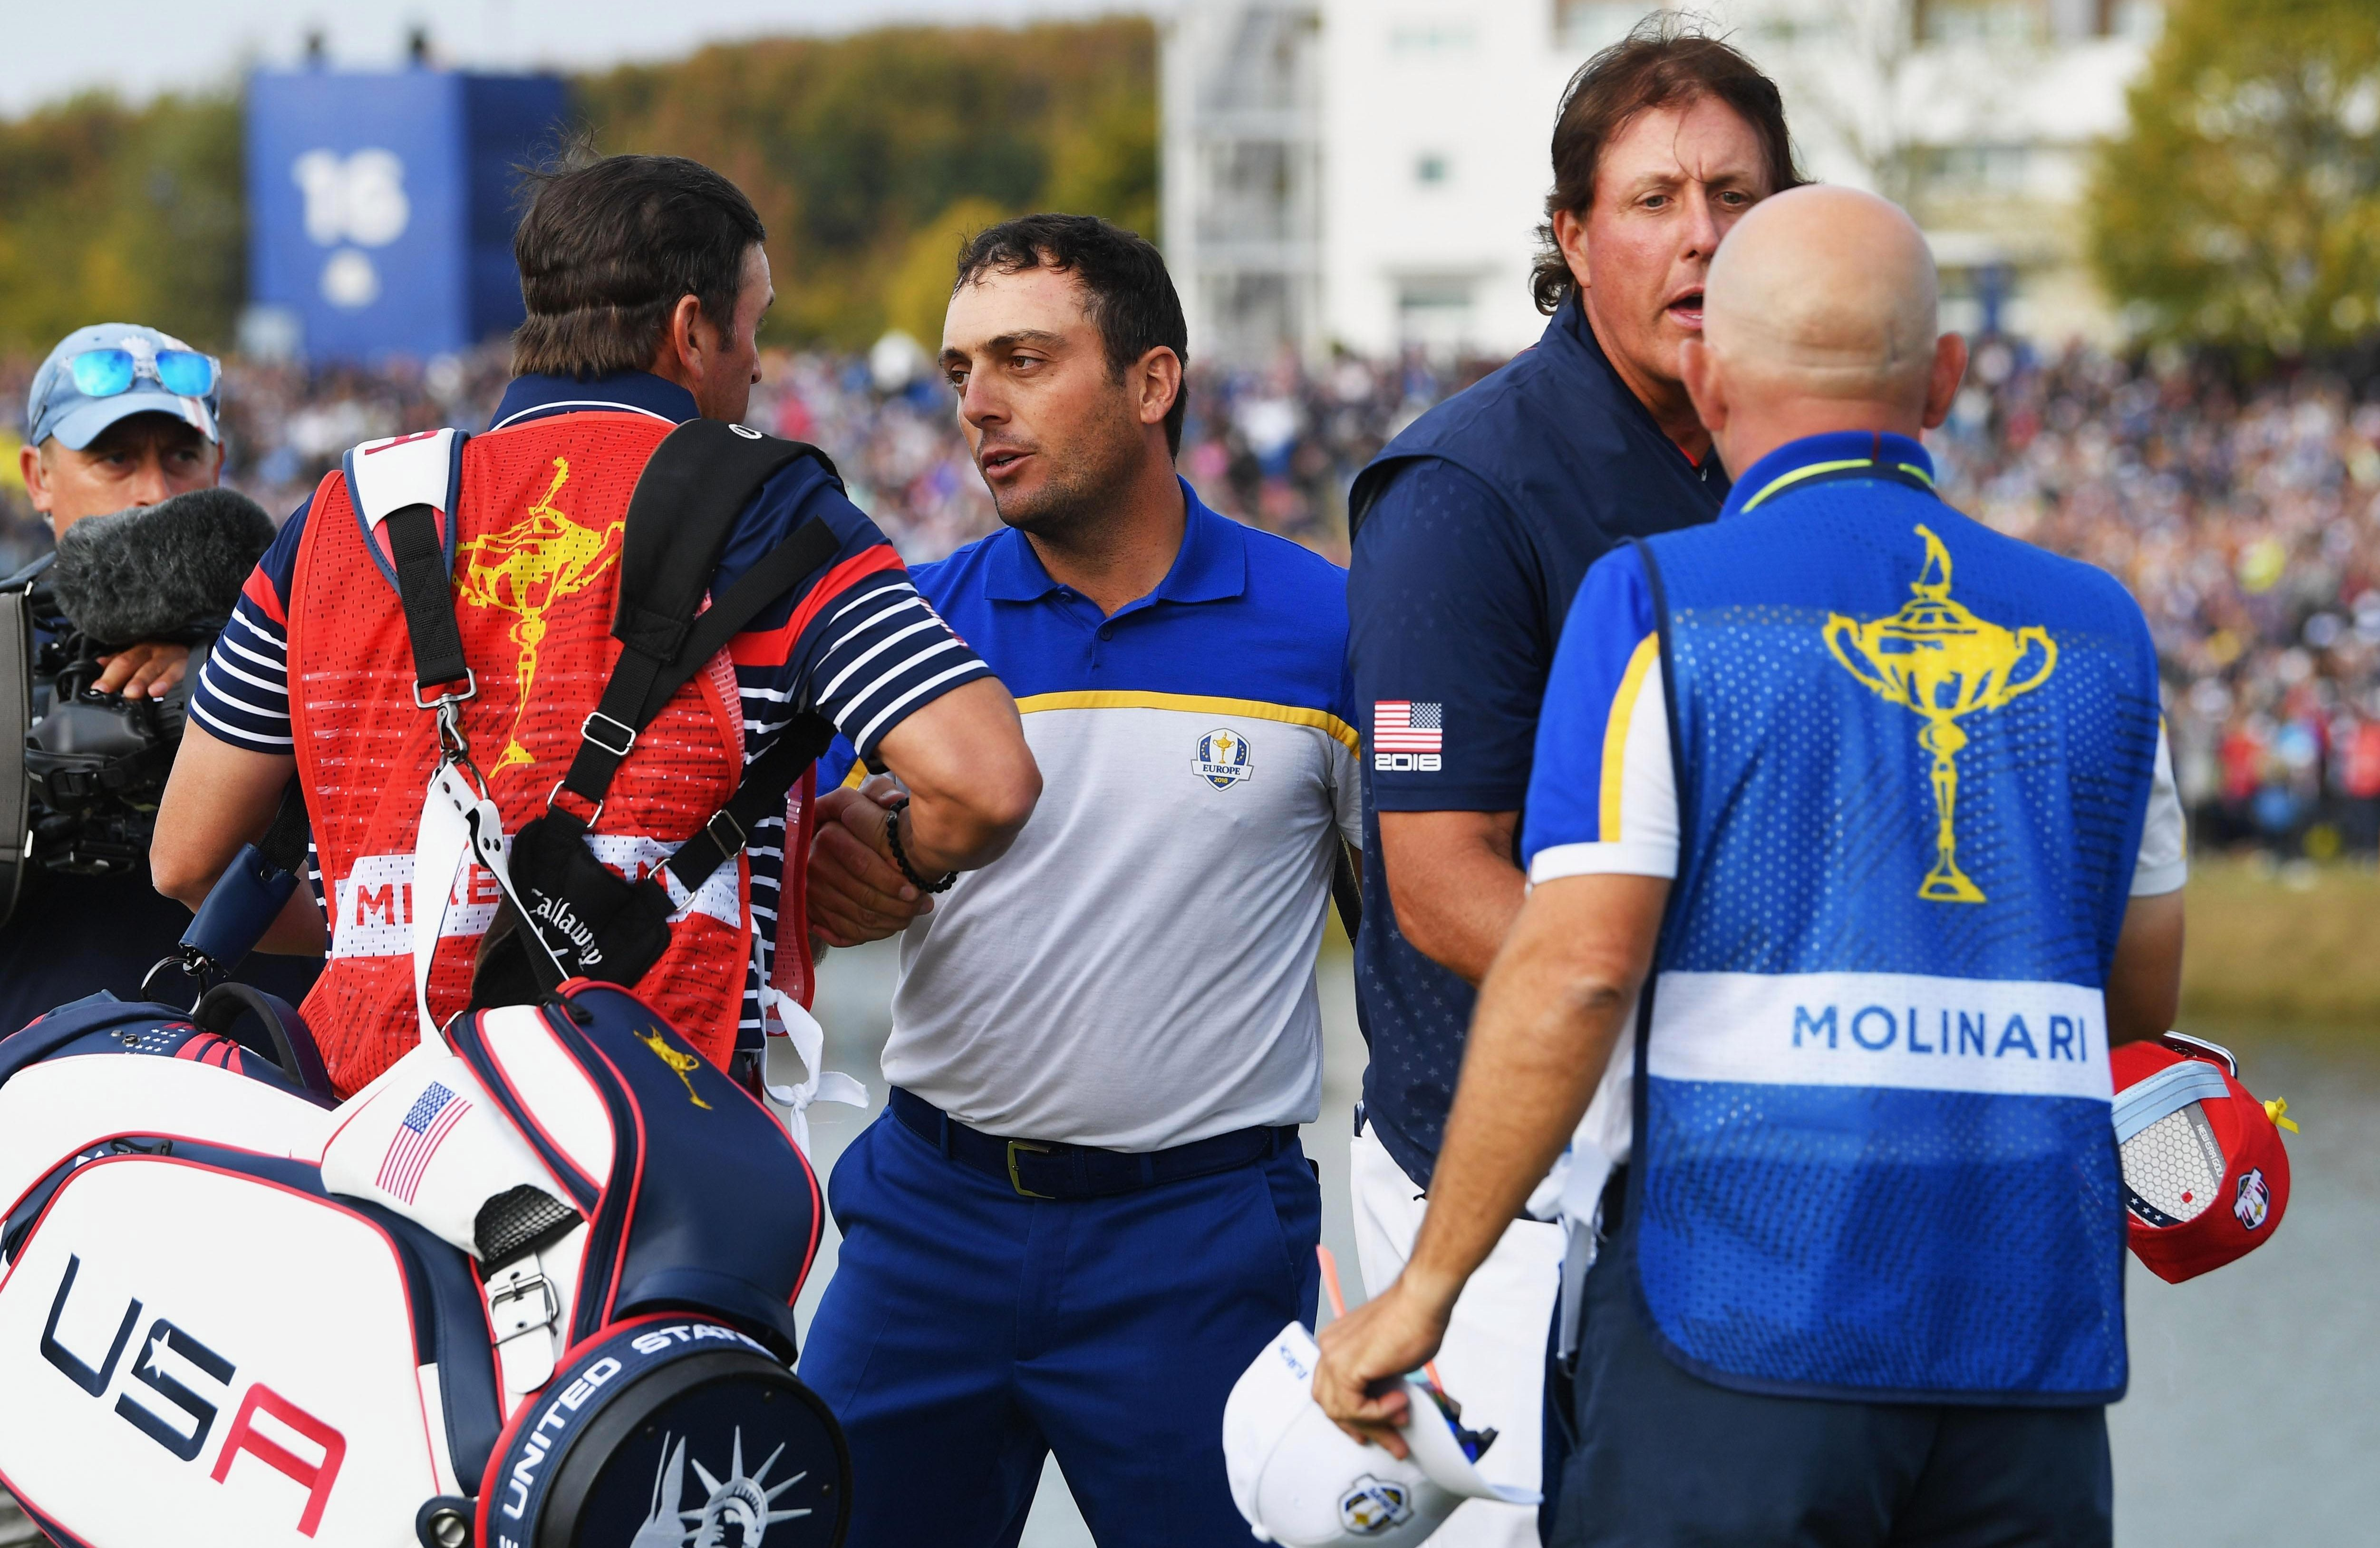 Francesco Molinari and Mickelson shook hands as the American conceded the point to Europe